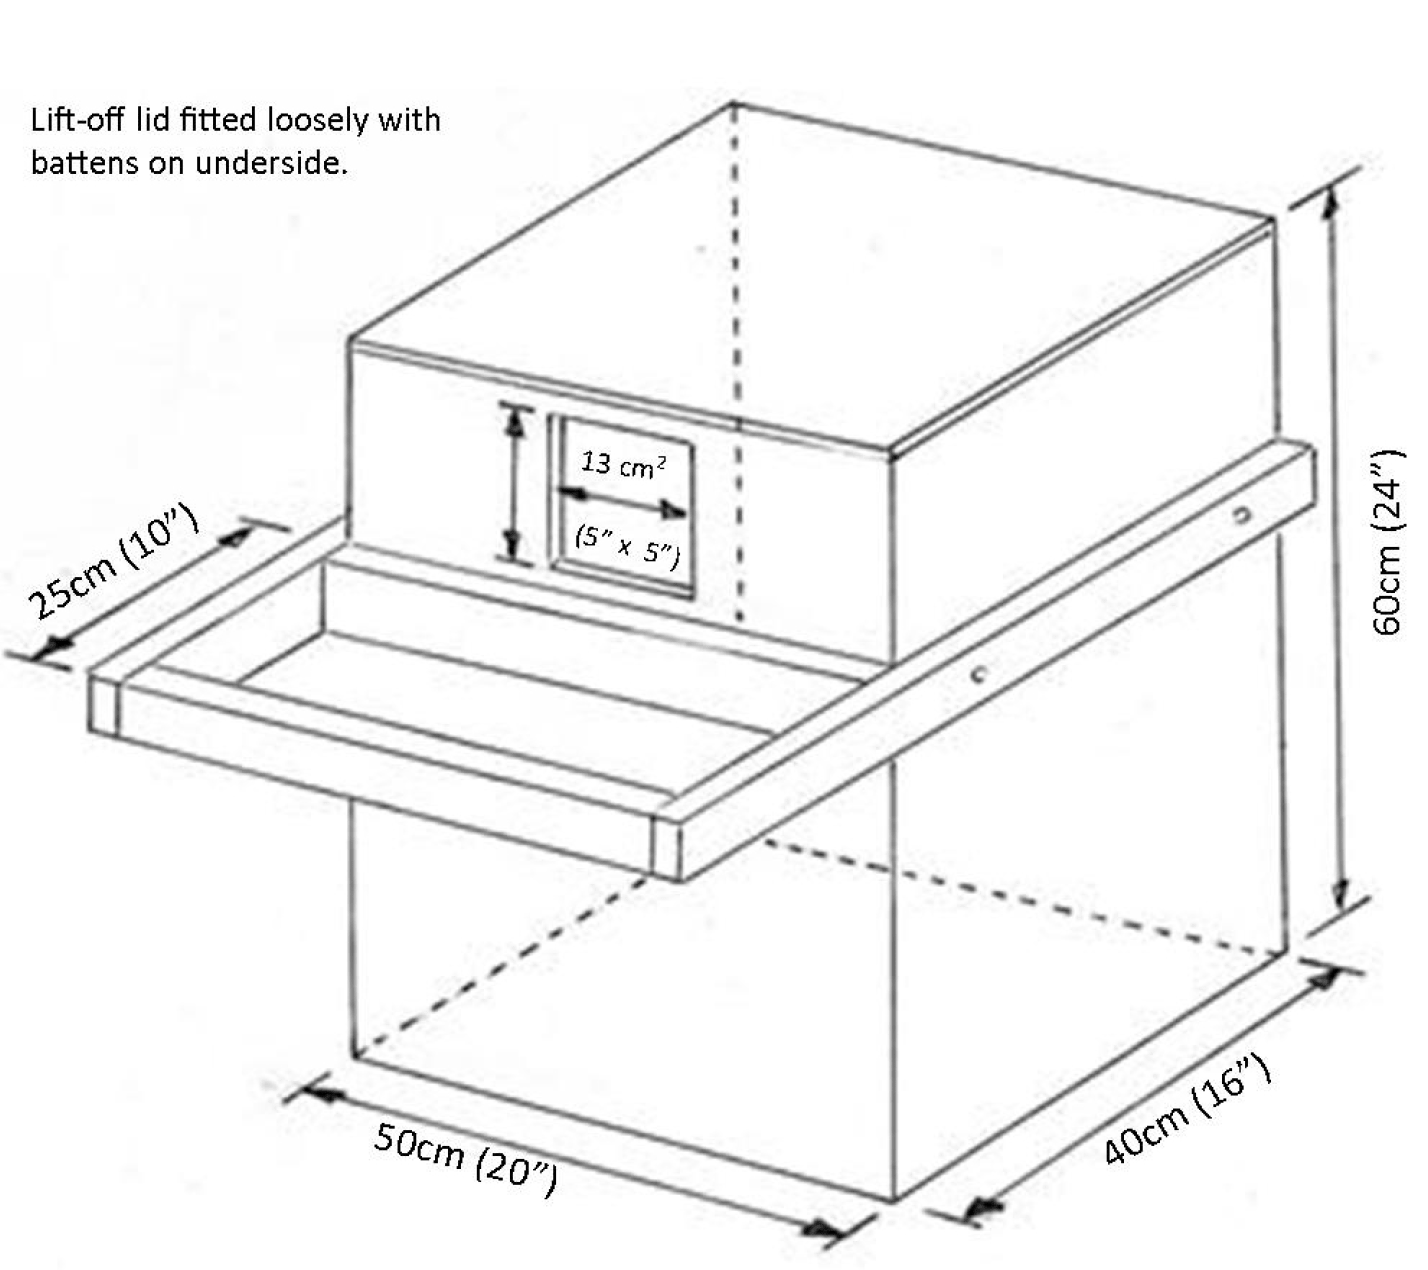 Plan for interior barn owl nestbox - image-min.png